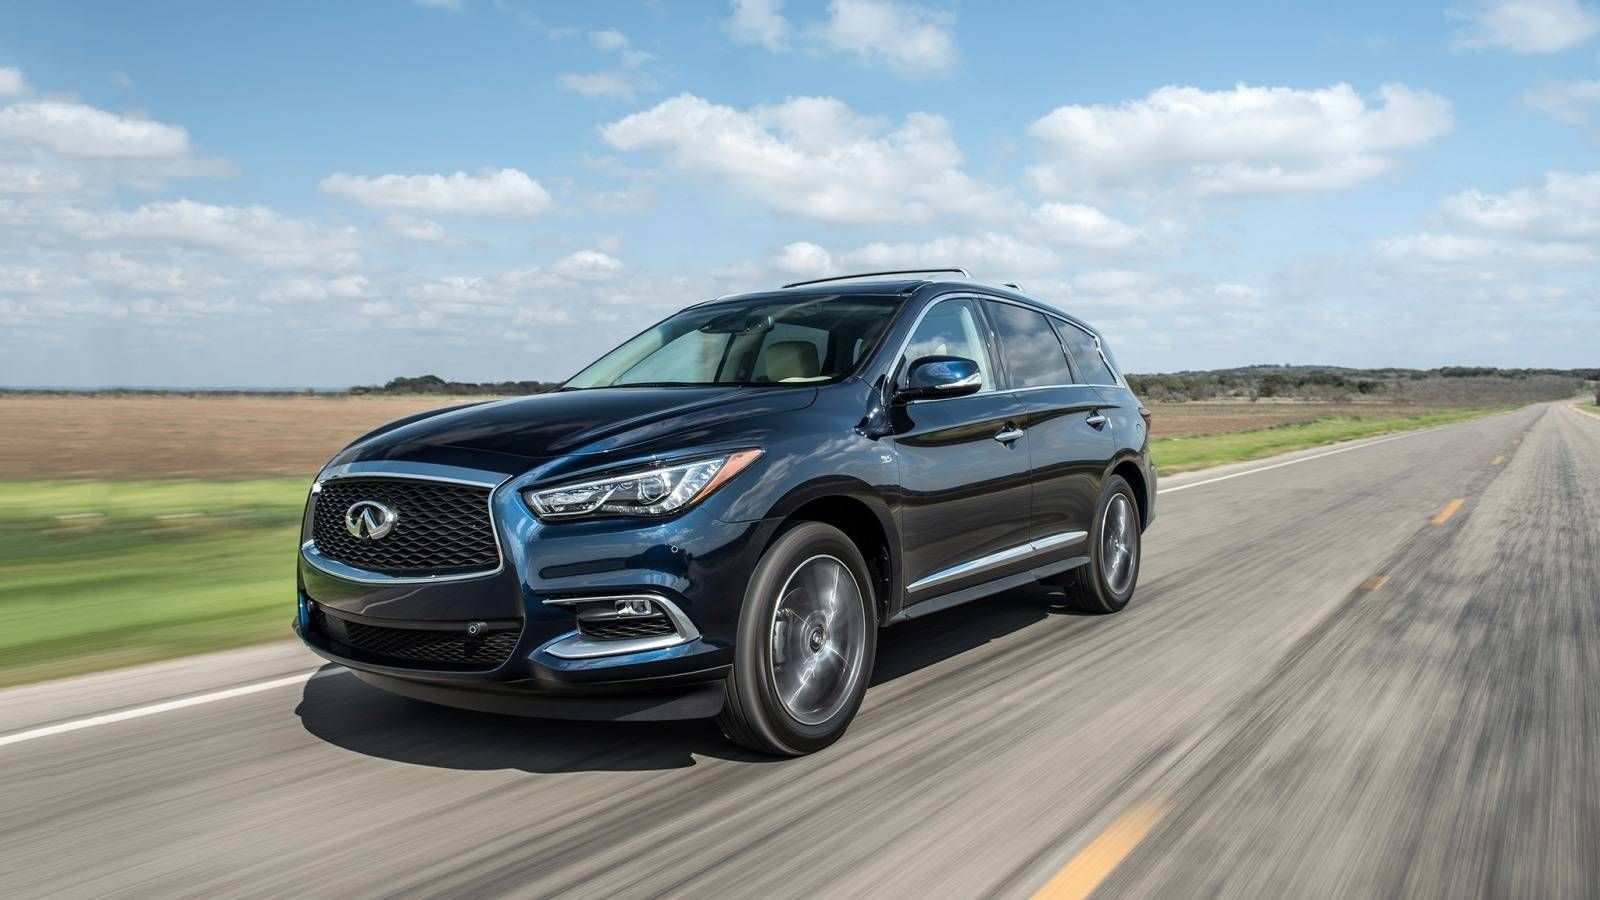 36 All New New 2019 Infiniti Qx60 Apple Carplay Release Date And Specs Configurations for New 2019 Infiniti Qx60 Apple Carplay Release Date And Specs